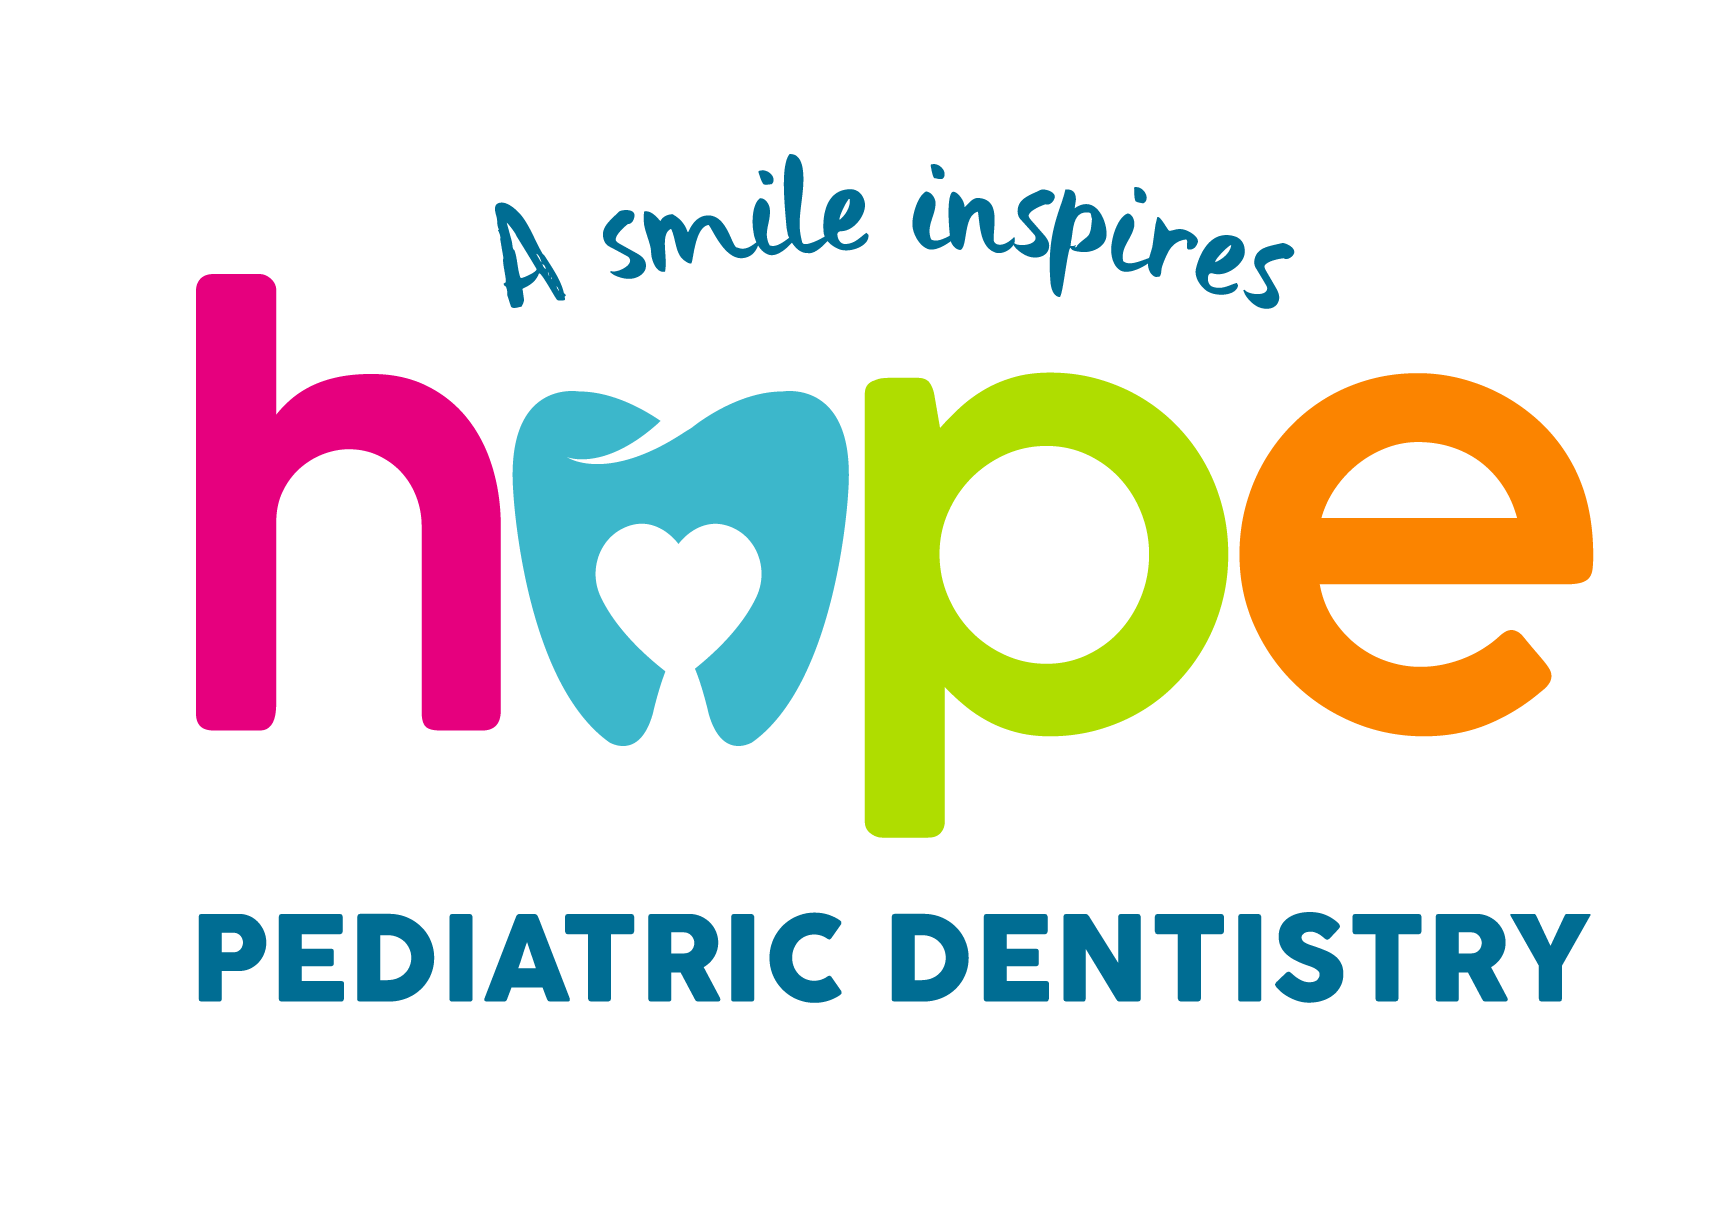 Pediatric dentist  needing a fun logo that is eye-catching and cheerful